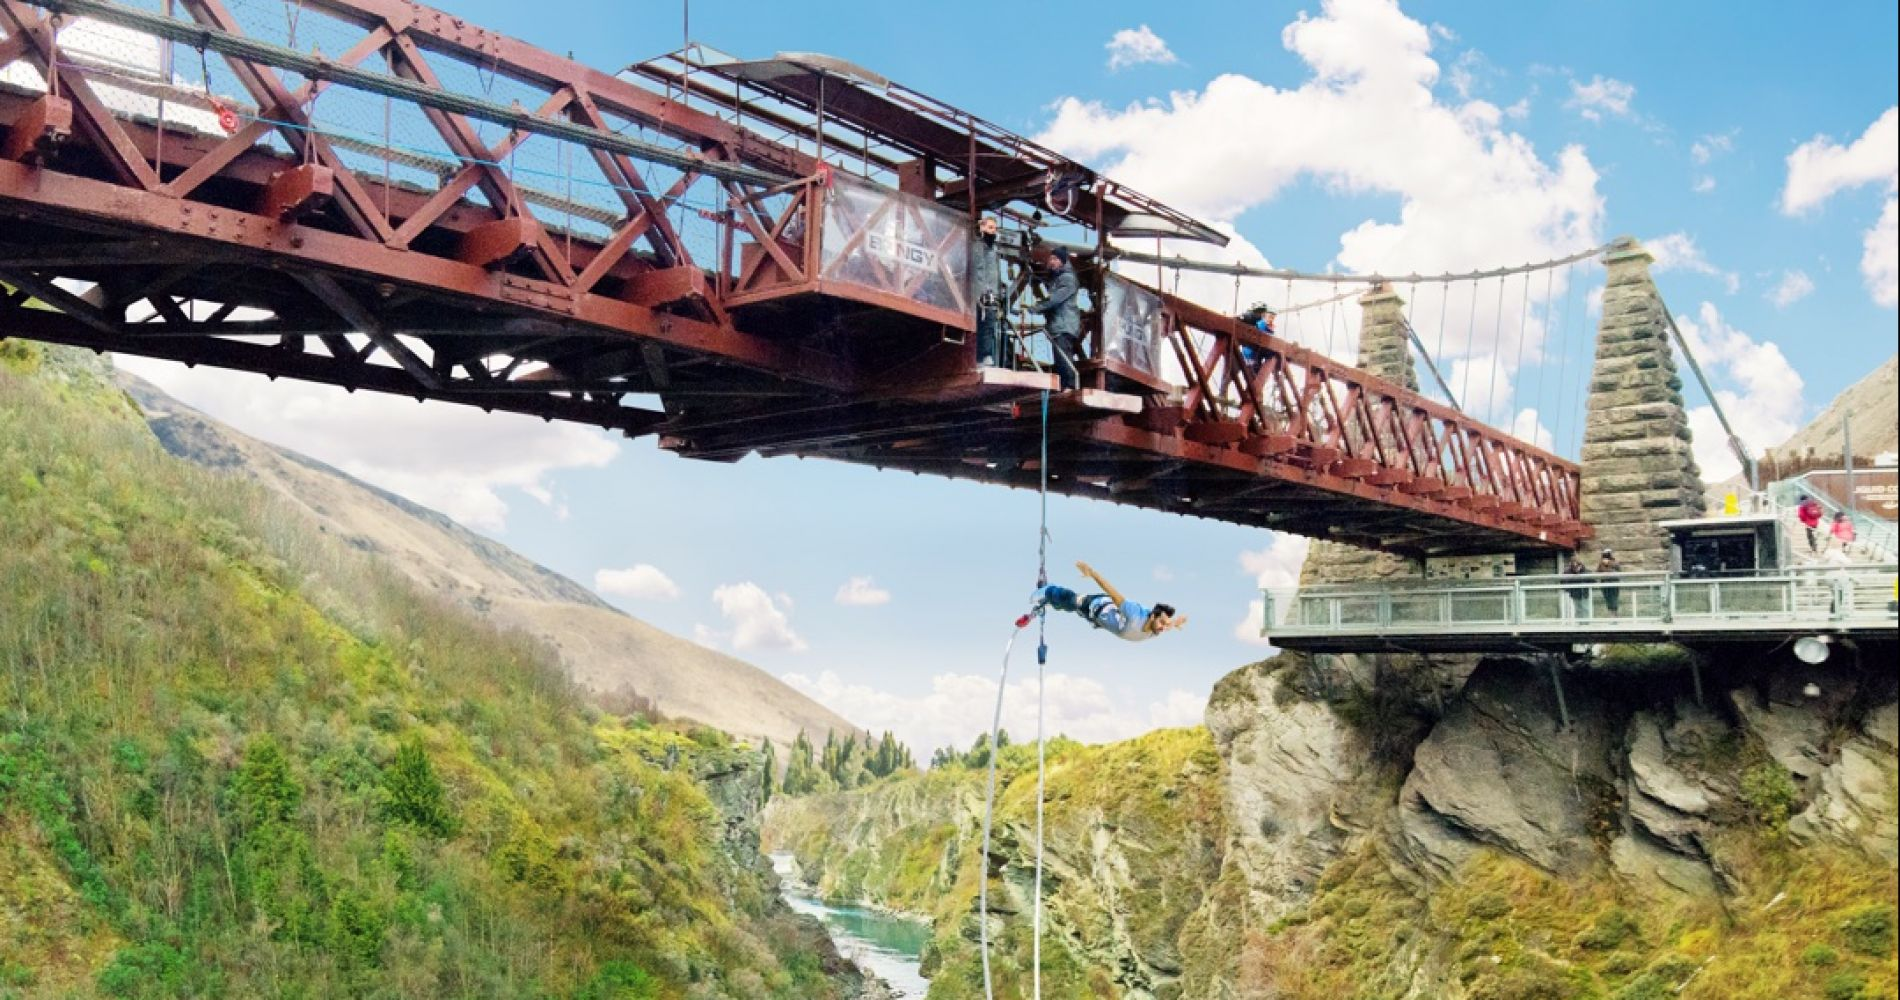 Kawarau Bridge Bungy jump